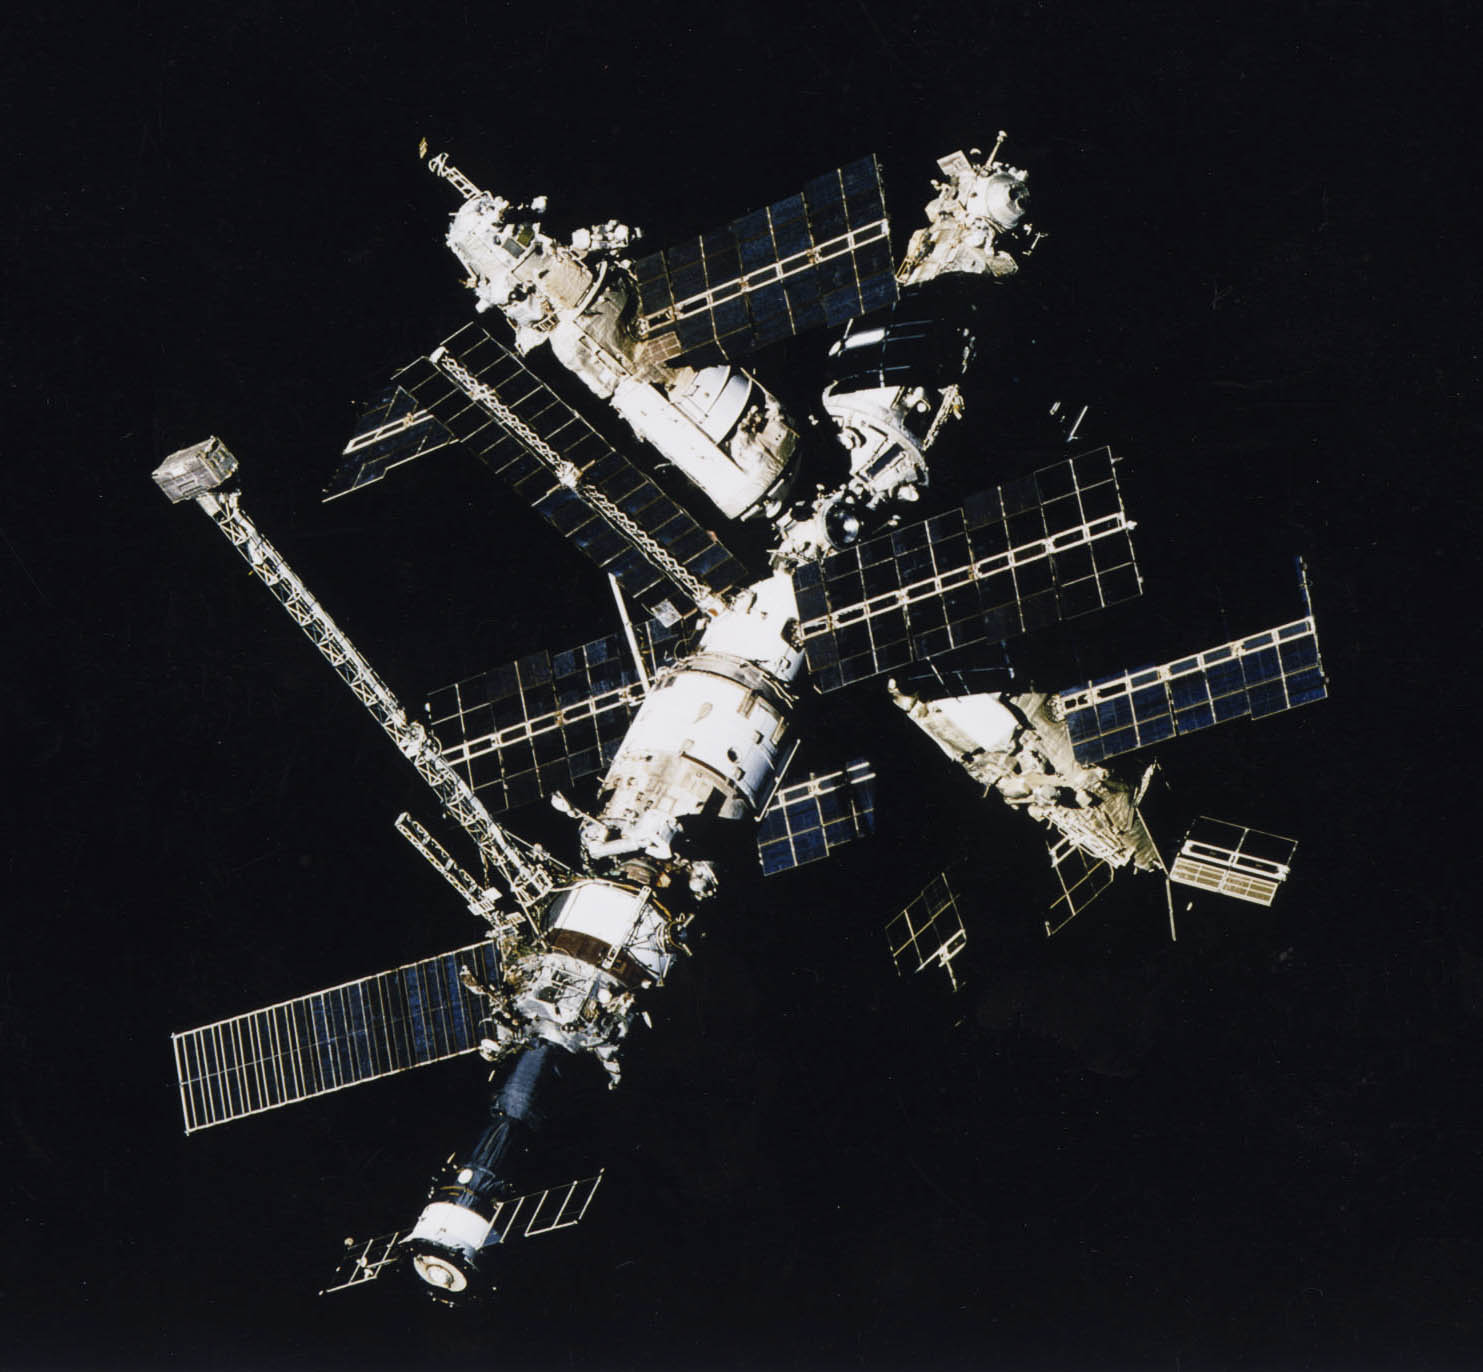 Video Mir Space Station Mir Space Station Launched